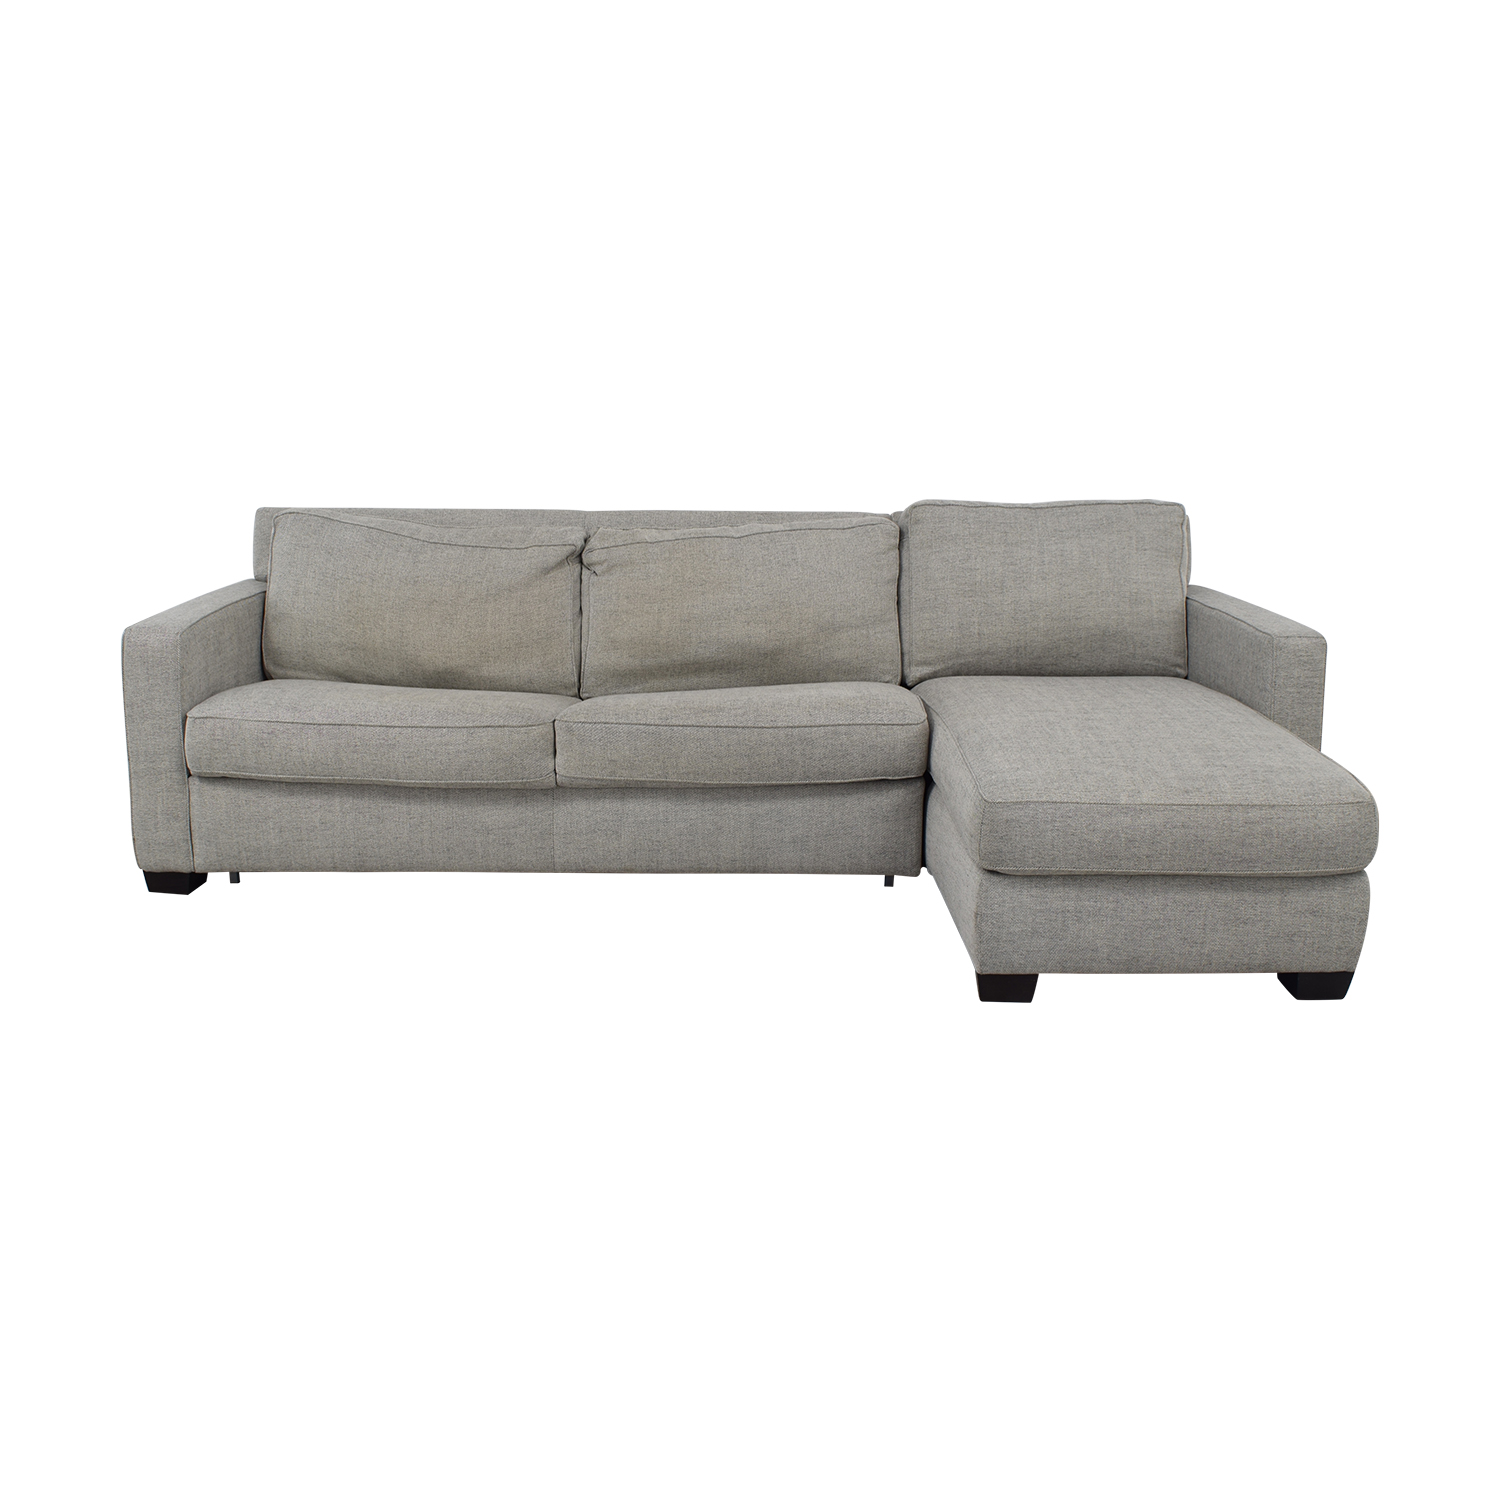 West Elm West Elm Henry Sectional Sleeper Sofa discount